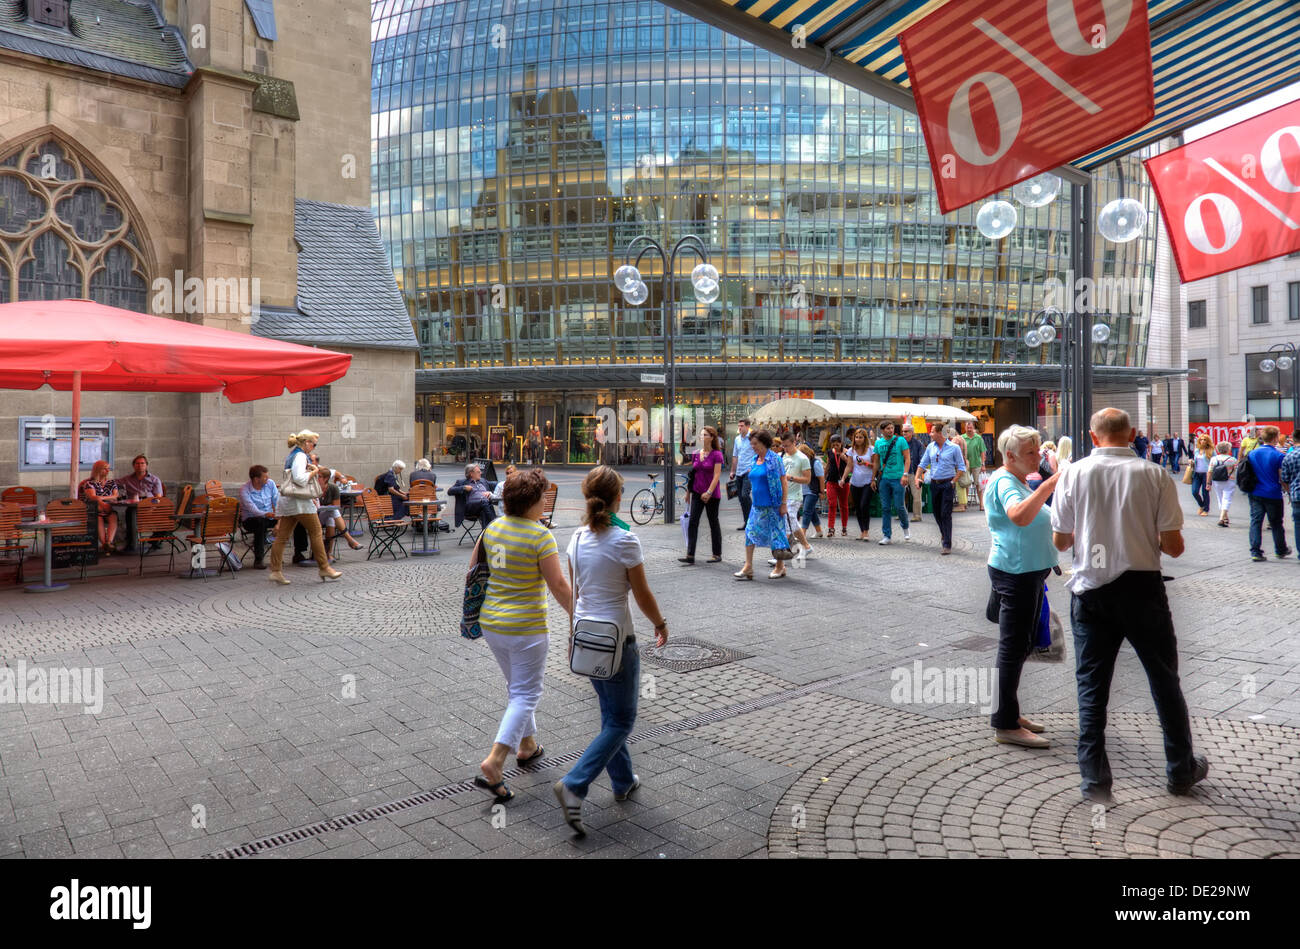 Pedestrian shopping street in Cologne, Germany. - Stock Image